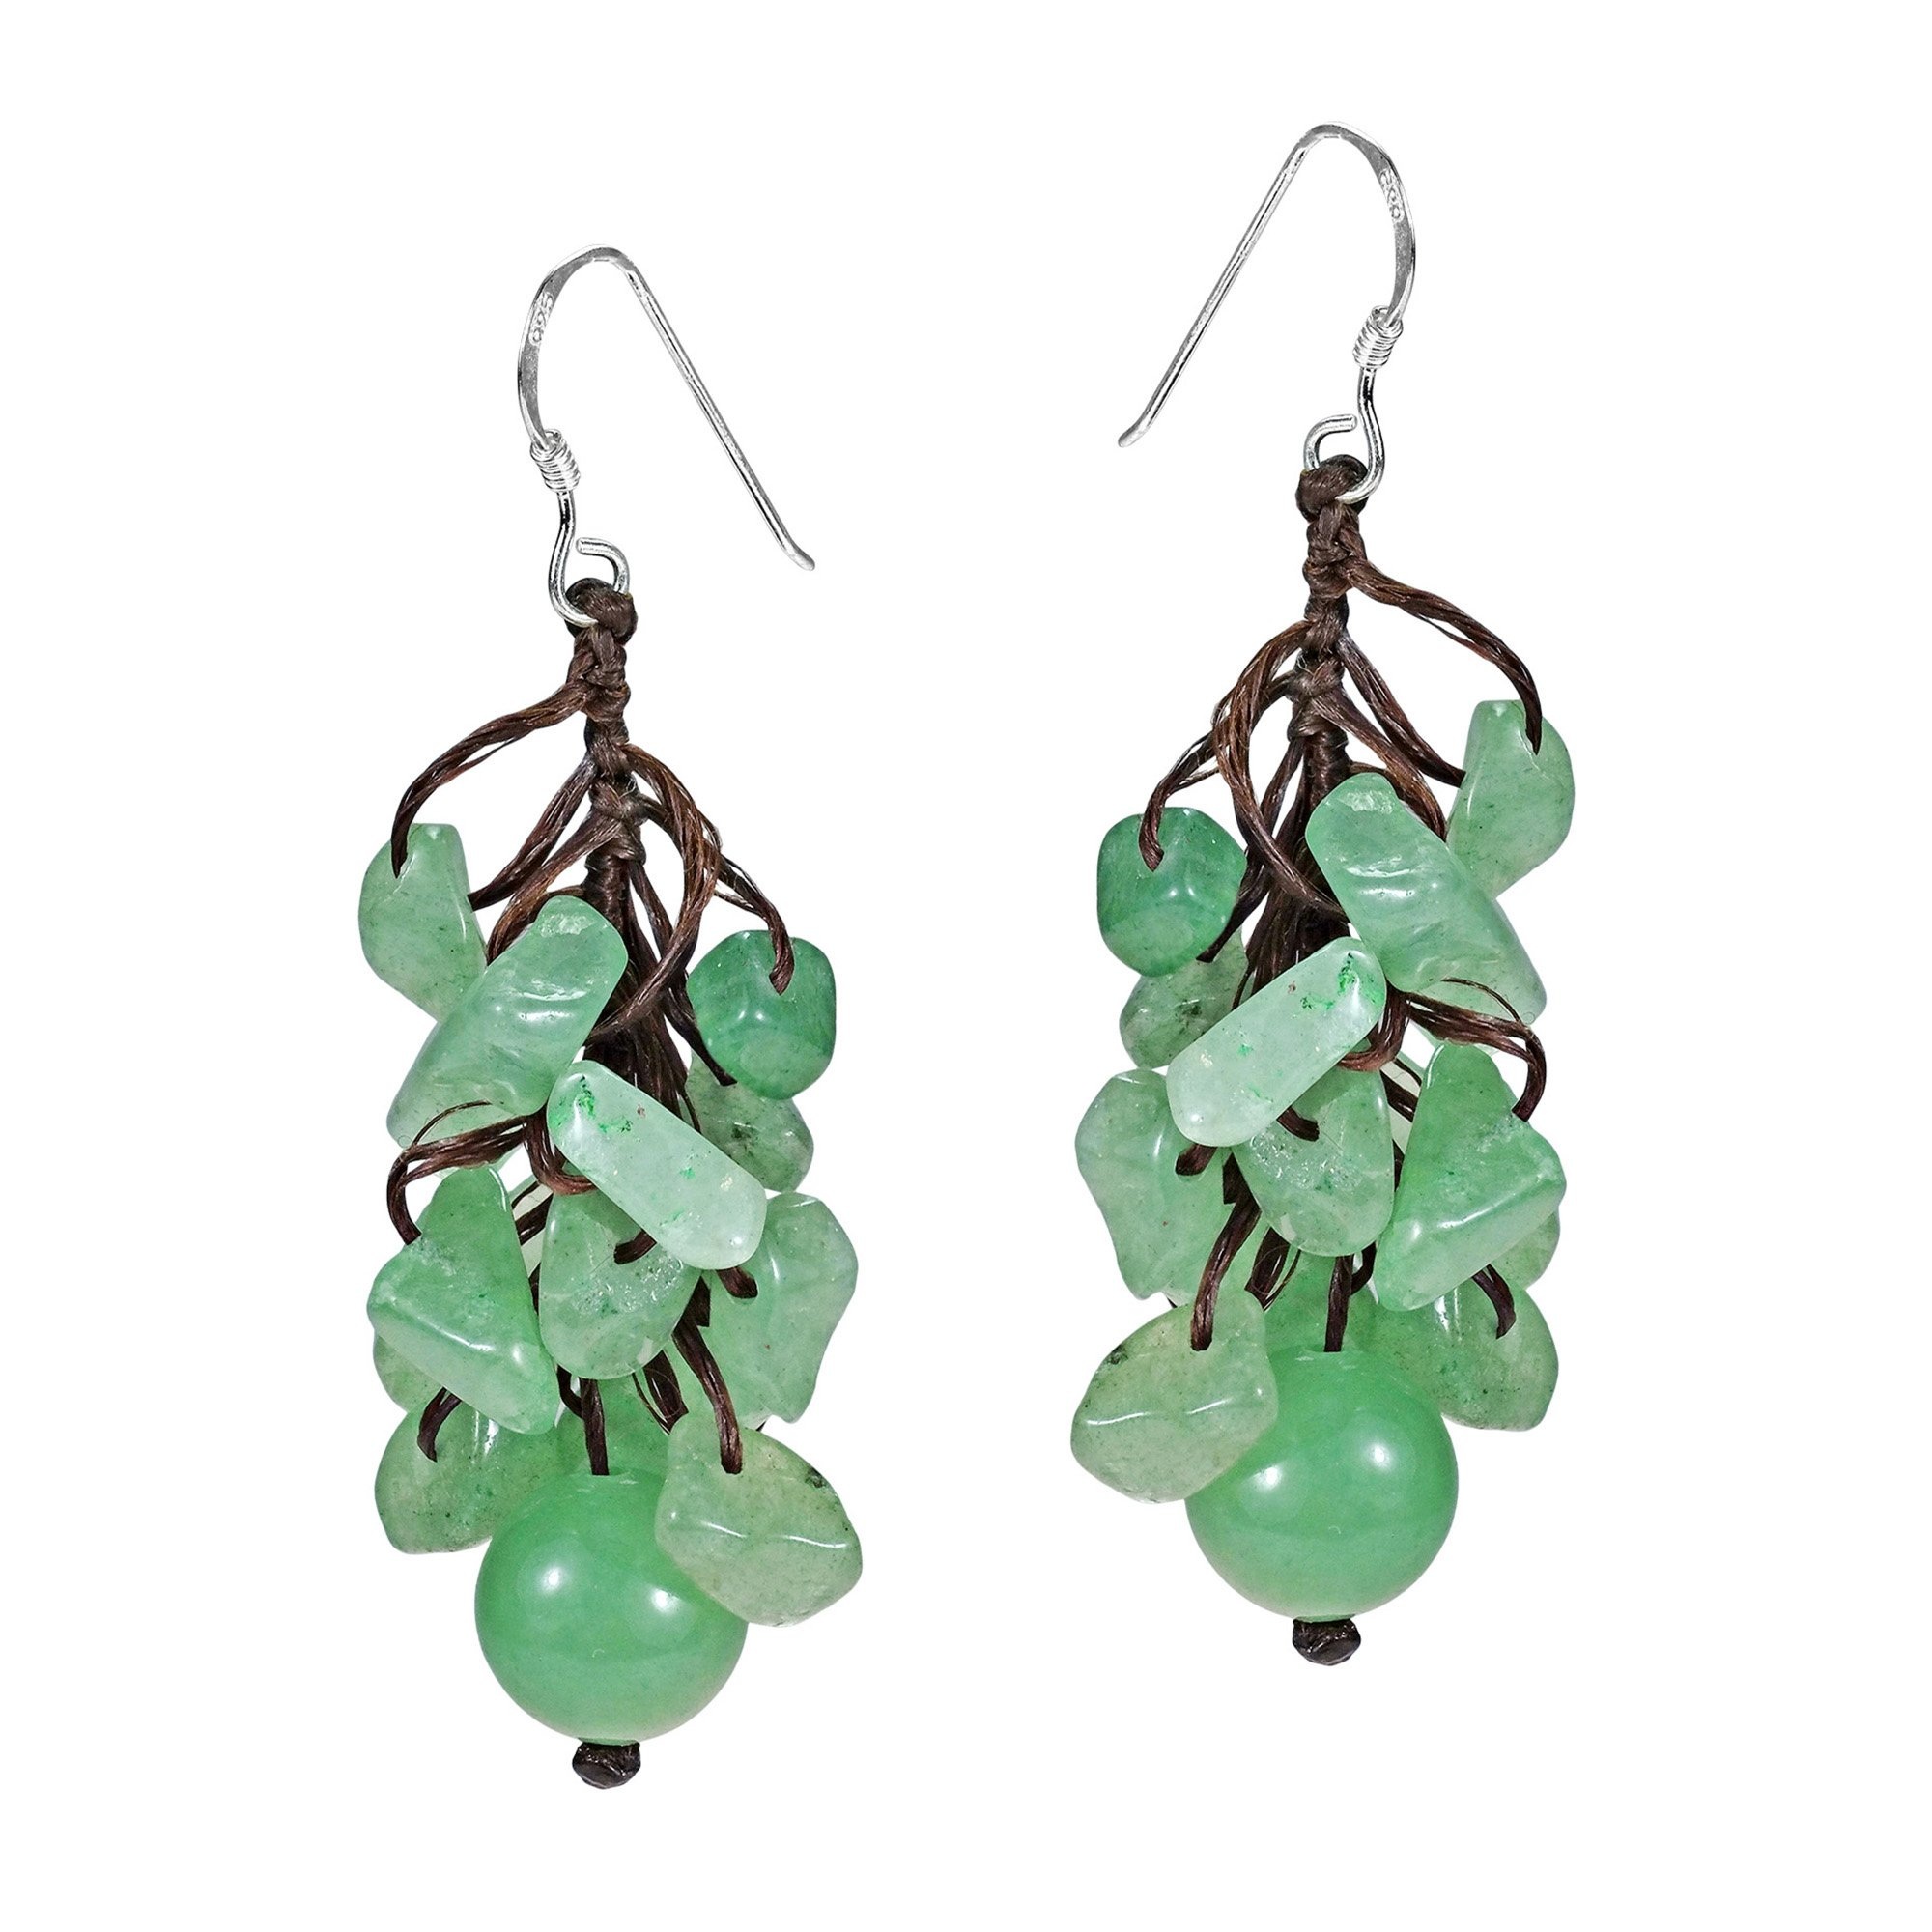 Dangle Cluster Ball Simulated Aventurine Sterling Silver Earrings by AeraVida (Image #2)